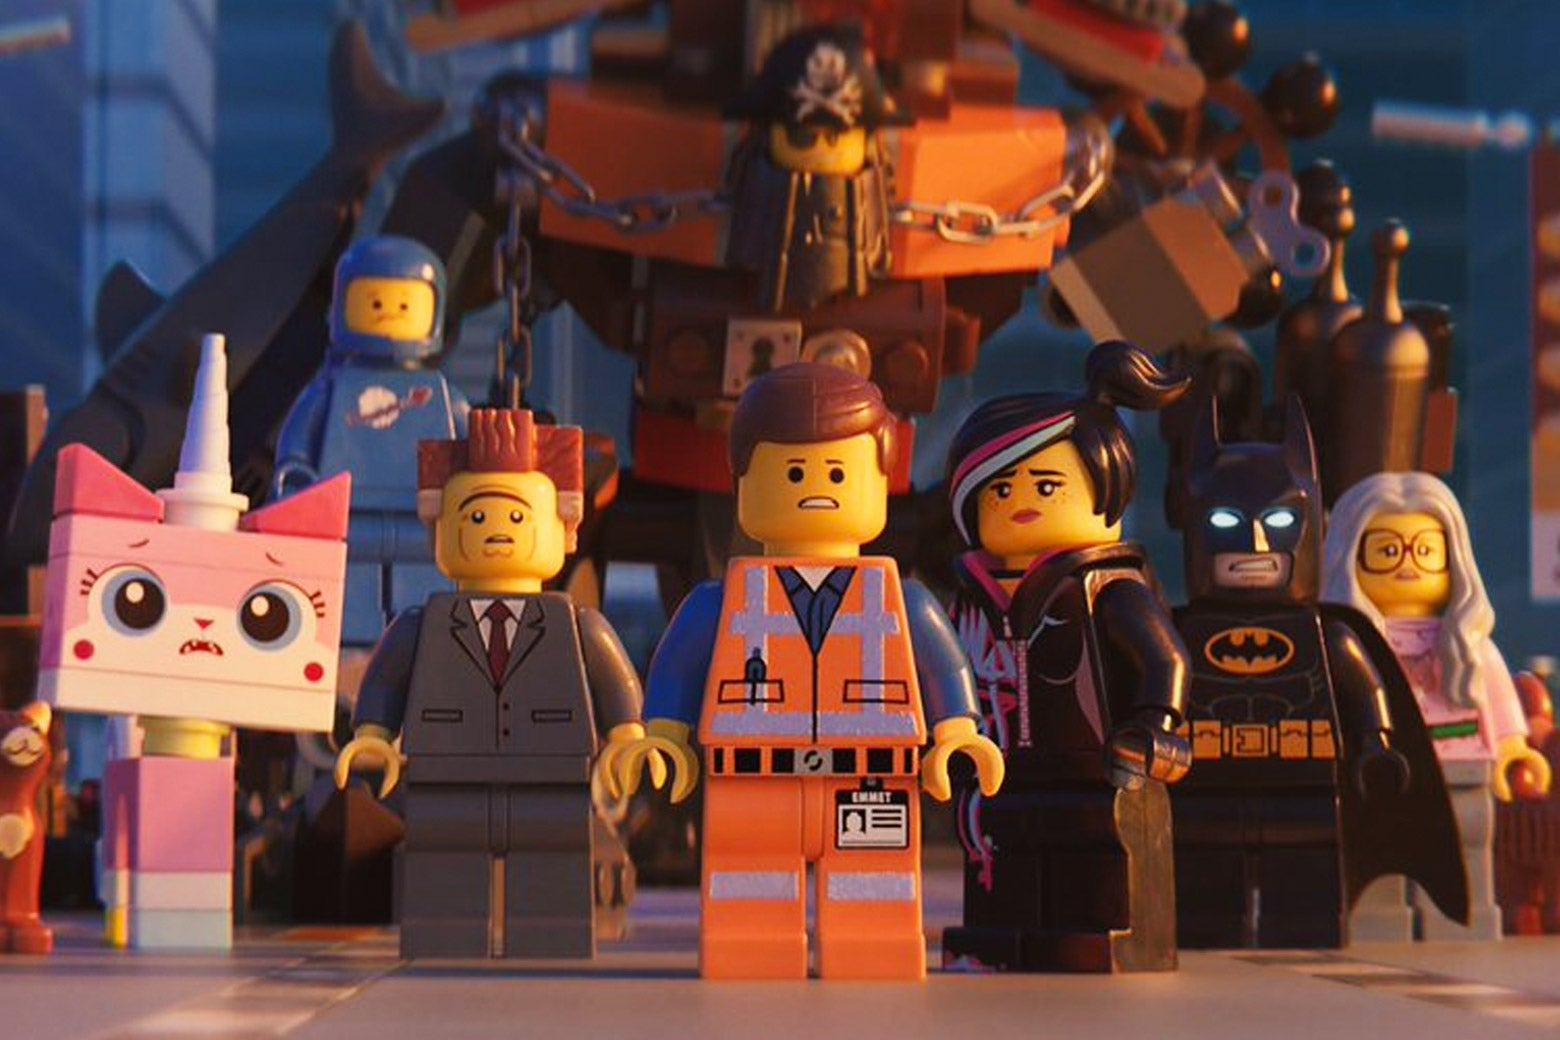 A variety of figurines from the The Lego Movie 2.